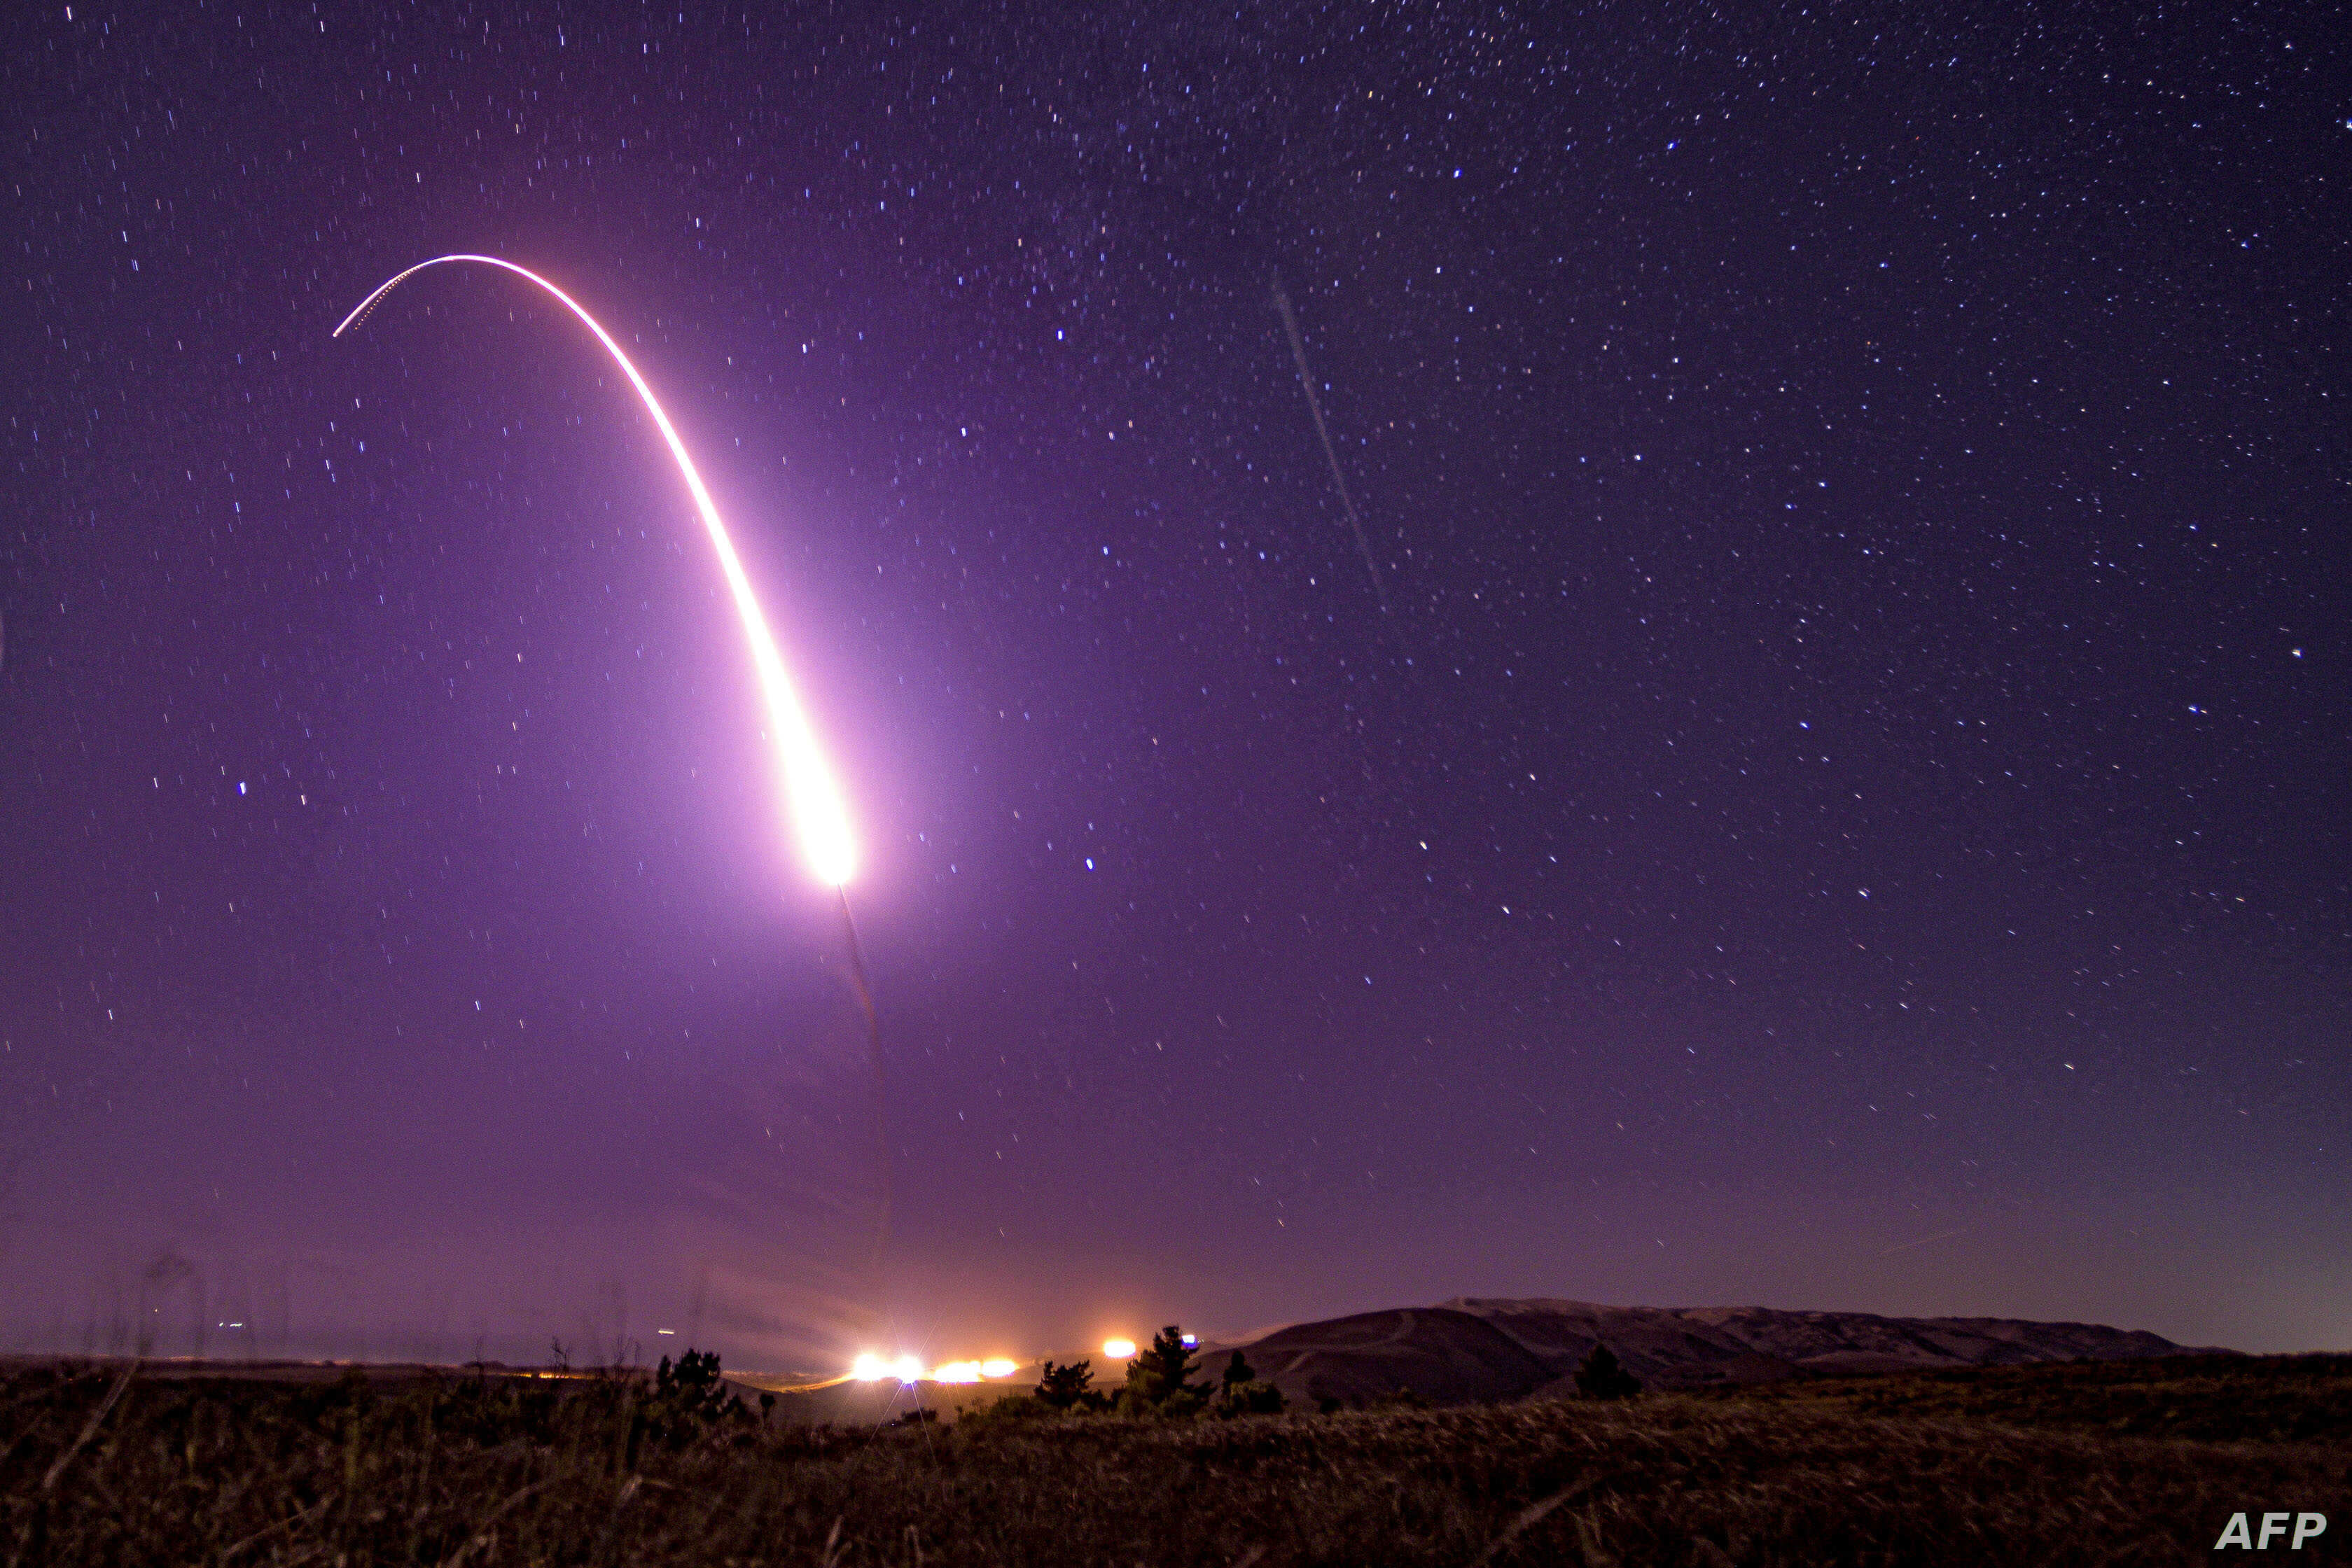 This U.S. Air Force handout photo shows an unarmed Minuteman III intercontinental ballistic missile launching during an operational test at 1:13 a.m. Pacific Time, at Vandenberg Air Force Base, California.